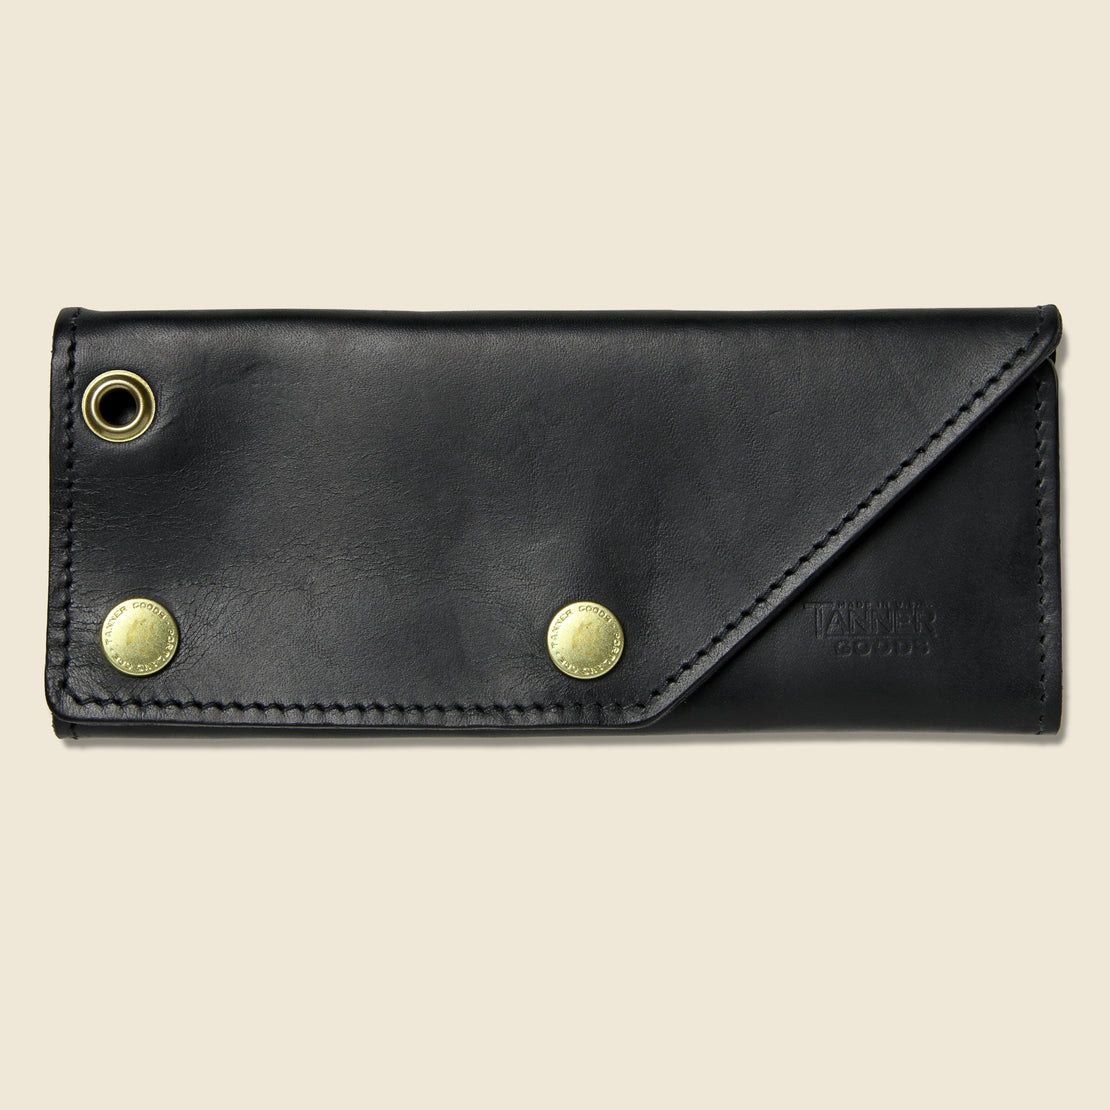 Tanner Workman Wallet - Black